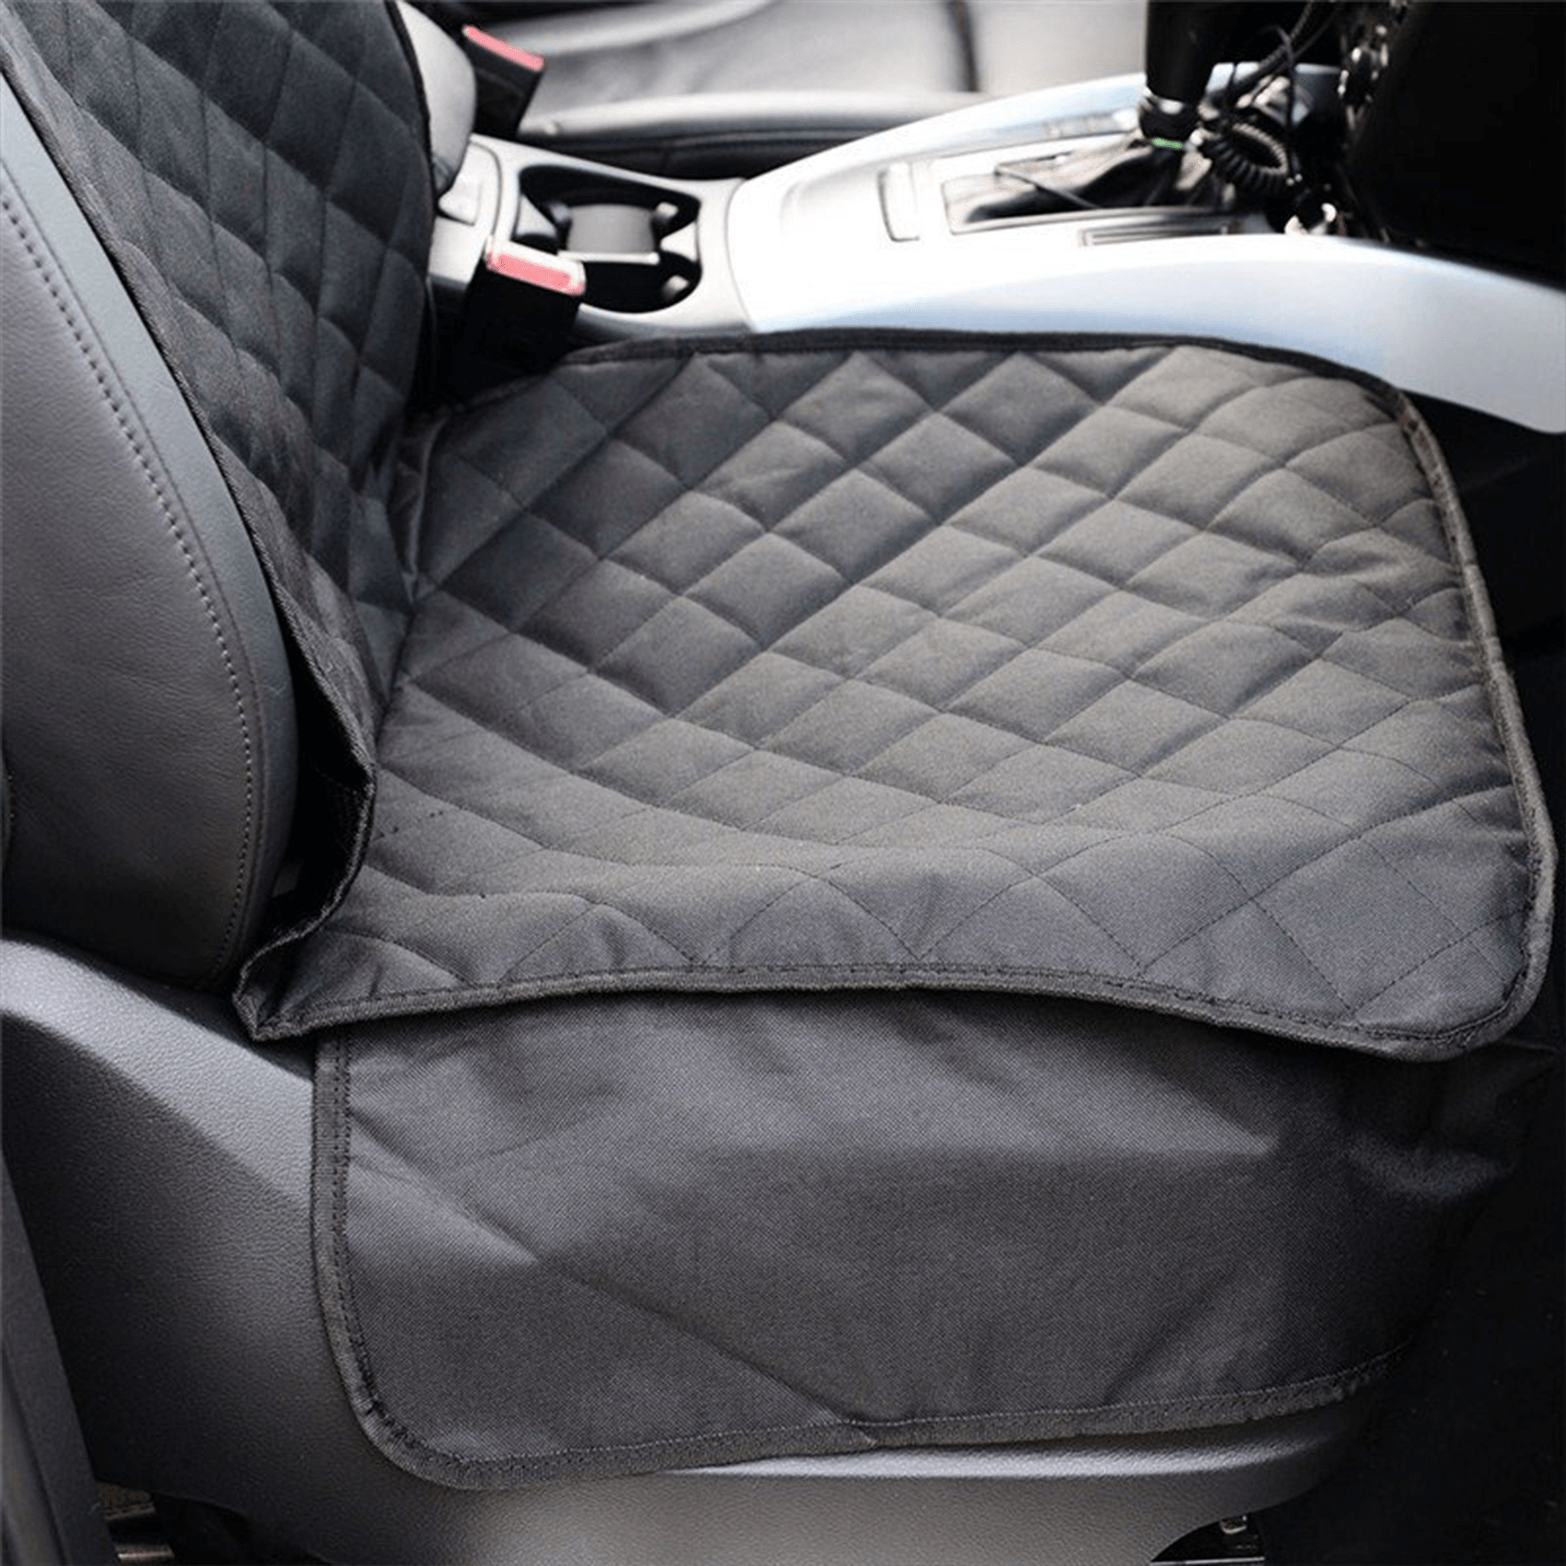 Dog Car Protector >> Dog Car Seat Covers Lowed Priced Car Seat Protector For Dogs